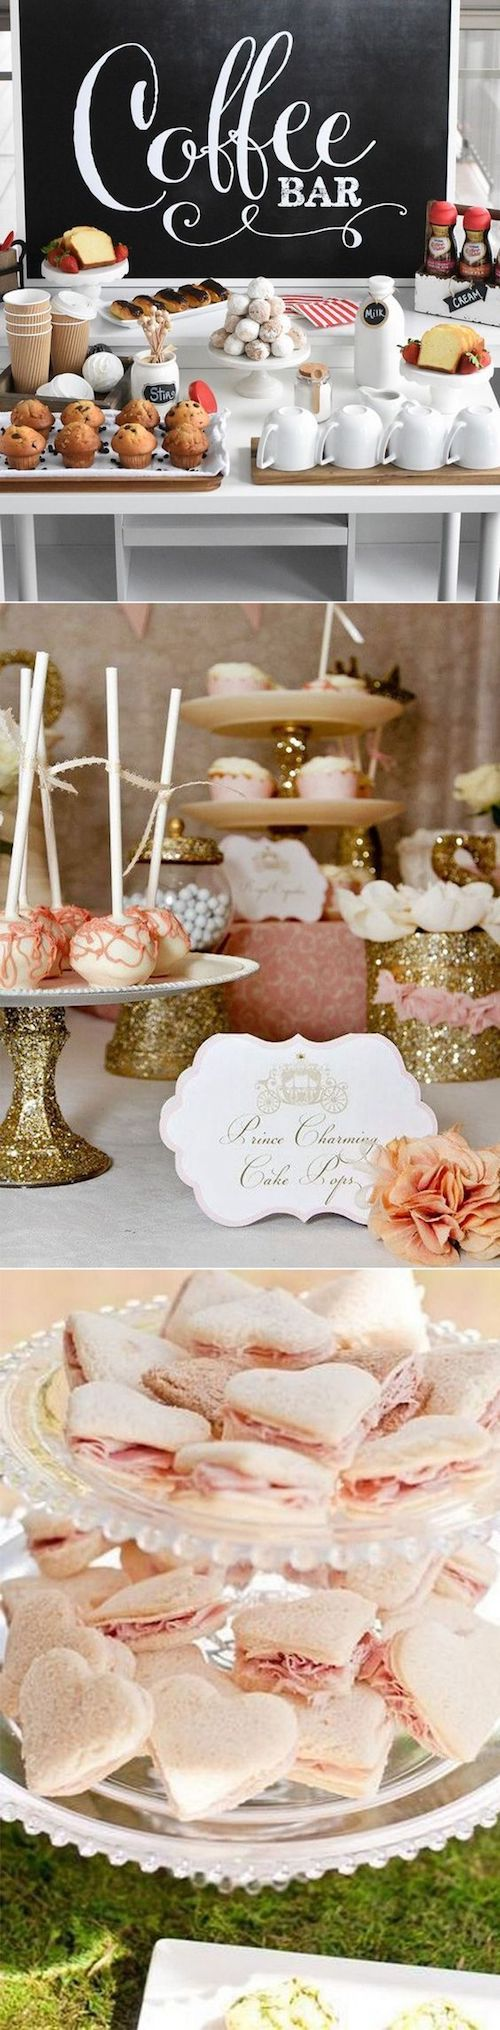 You are sure to impress the bride with these rad bridal shower party ideas.